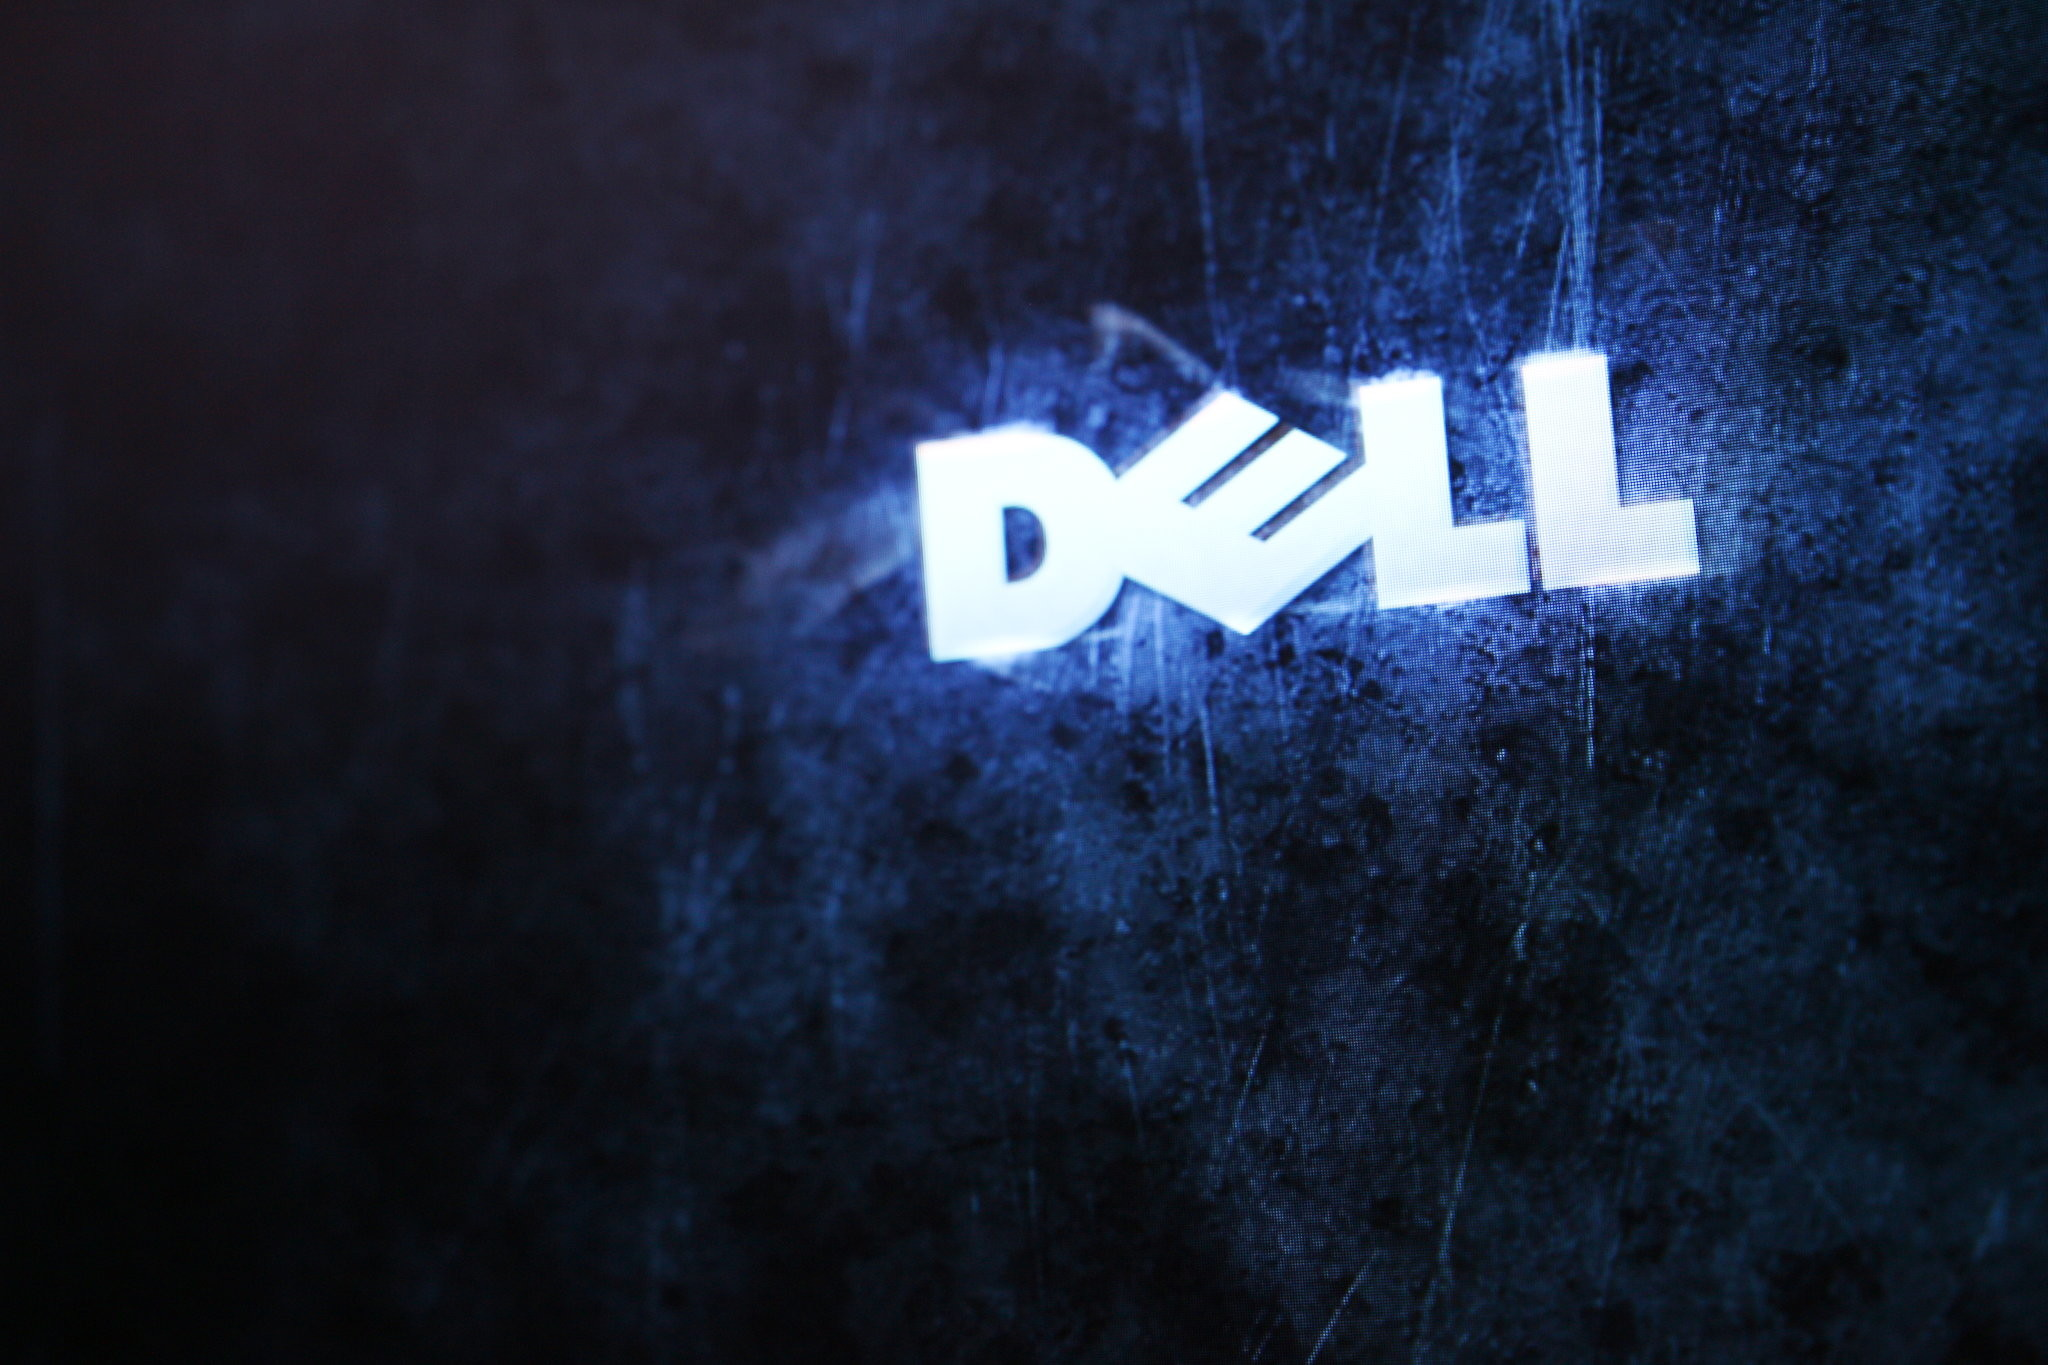 dell background Custom browser skins that help you personalize your browser.